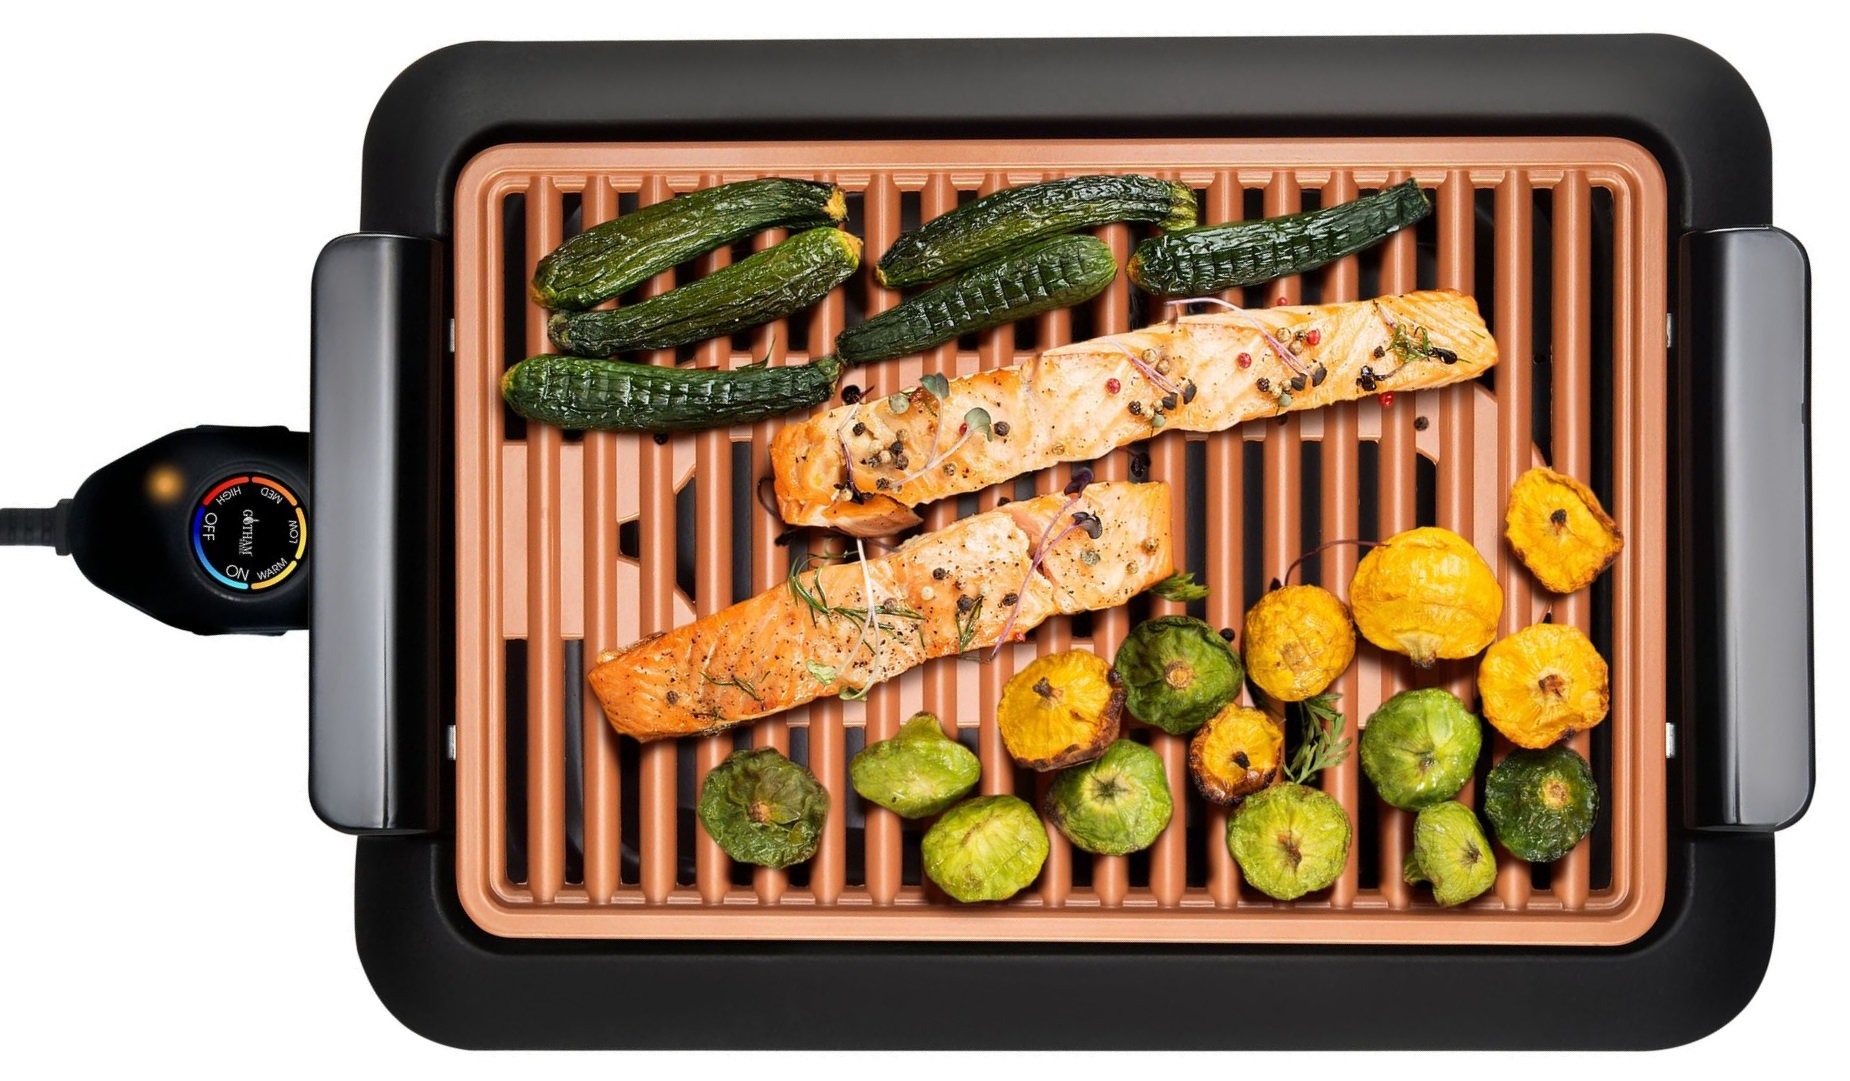 GOTHAM STEEL Smokeless Electric Grill, Portable and Nonstick As Seen On TV (Deluxe) by GOTHAM STEEL